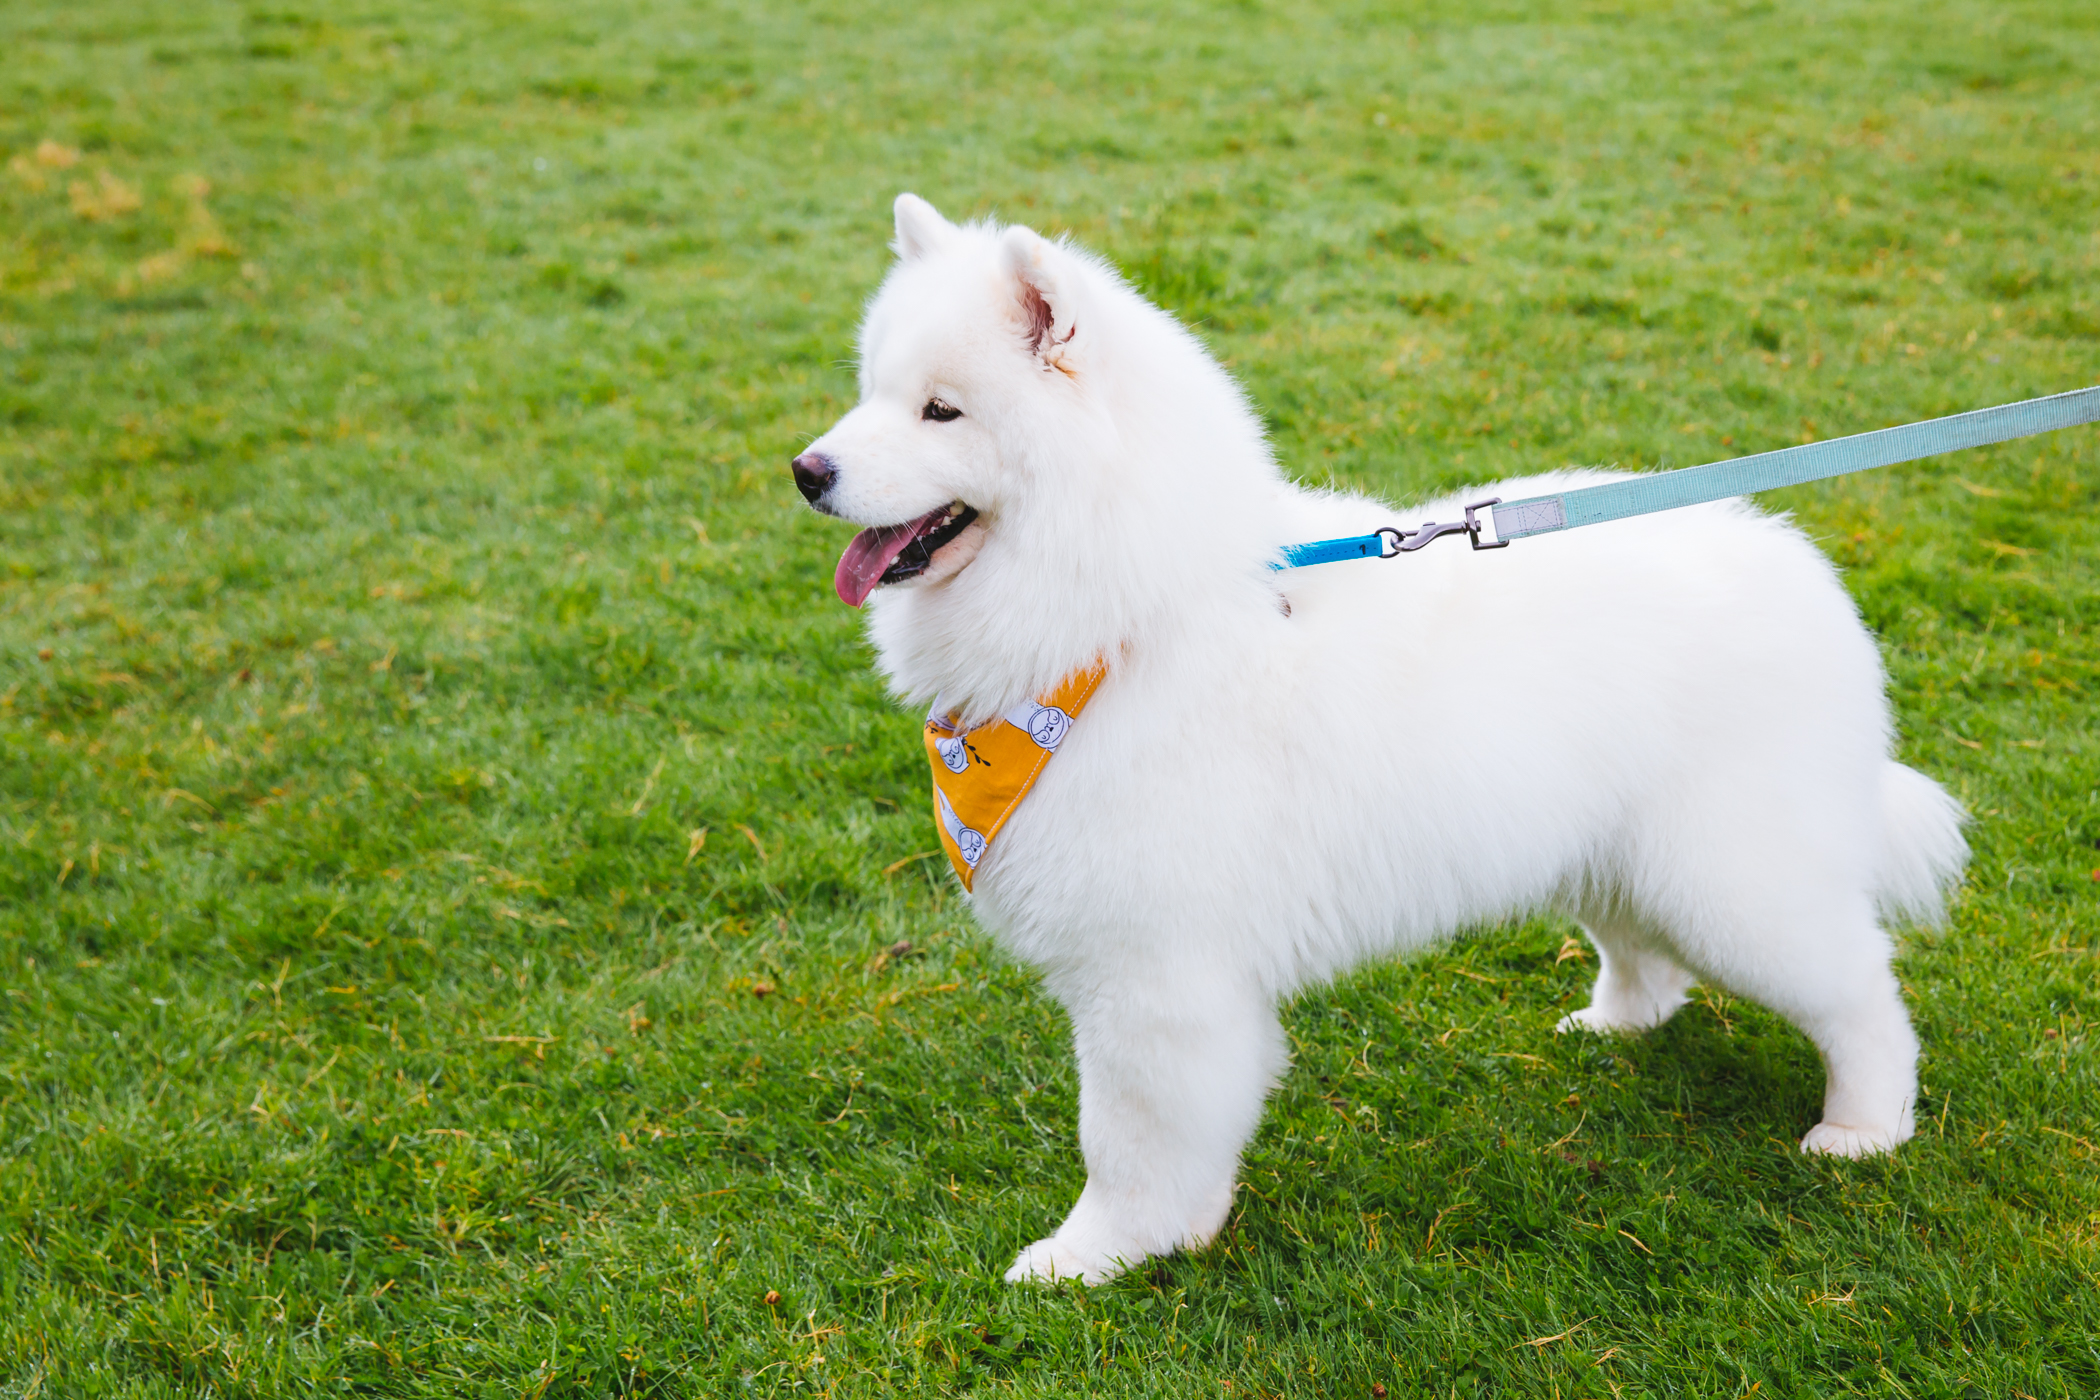 "Ginger is a 2-year-old{&nbsp;}Samoyed adopted by KayLi and Ruifeng Wang in July.{&nbsp;}She was a prior show dog but has quickly adapted to her new family and life. She loves learning new tricks and exploring all the parks that the Seattle area has to offer, especially if there's squirrels or rabbits to chase. She hates baths and the{&nbsp;}vacuum, but loves fresh fruit, jumping into lakes and hanging out and watching TV with her humans. Ginger's a bit shy with new dogs and people, but once she realizes you want to play, she has tons of energy to share. Find her on Instagram{&nbsp;}<a  href=""https://www.instagram.com/ginger.cloud/"" target=""_blank"" title=""https://www.instagram.com/ginger.cloud/"">@Ginger.cloud</a>.{&nbsp;}<a  href=""http://seattlerefined.com/ruffined"" target=""_blank"" title=""http://seattlerefined.com/ruffined"">The RUFFined Spotlight</a>{&nbsp;}is a weekly profile of local pets living and loving life in the PNW. If you or someone you know has a pet you'd like featured, email us at{&nbsp;}<a  href=""mailto:hello@seattlerefined.com"" target=""_blank"" title=""mailto:hello@seattlerefined.com"">hello@seattlerefined.com</a>, and your furbaby could be the next spotlighted! (Image: Sunita Martini / Seattle Refined)"